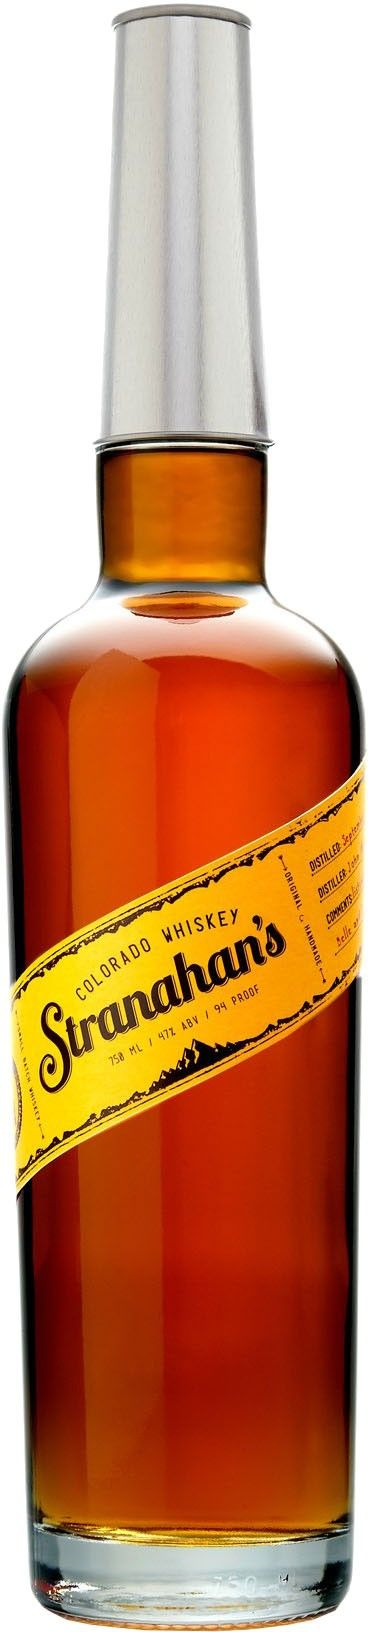 Aged for up to five years, this whiskey earned the Liquid Gold Award from Jim Murray's Whisky Bible in 2014.  I've read nothing but good things about Stranahan's. But I'm going to wait until the supply catches up with the demand curve a bit before buying. Not sure I can quite justify a $75 five-year bourbon -- No matter how enticing...   Might have to wait and try this one at Jack Rose Whiskey Bar.